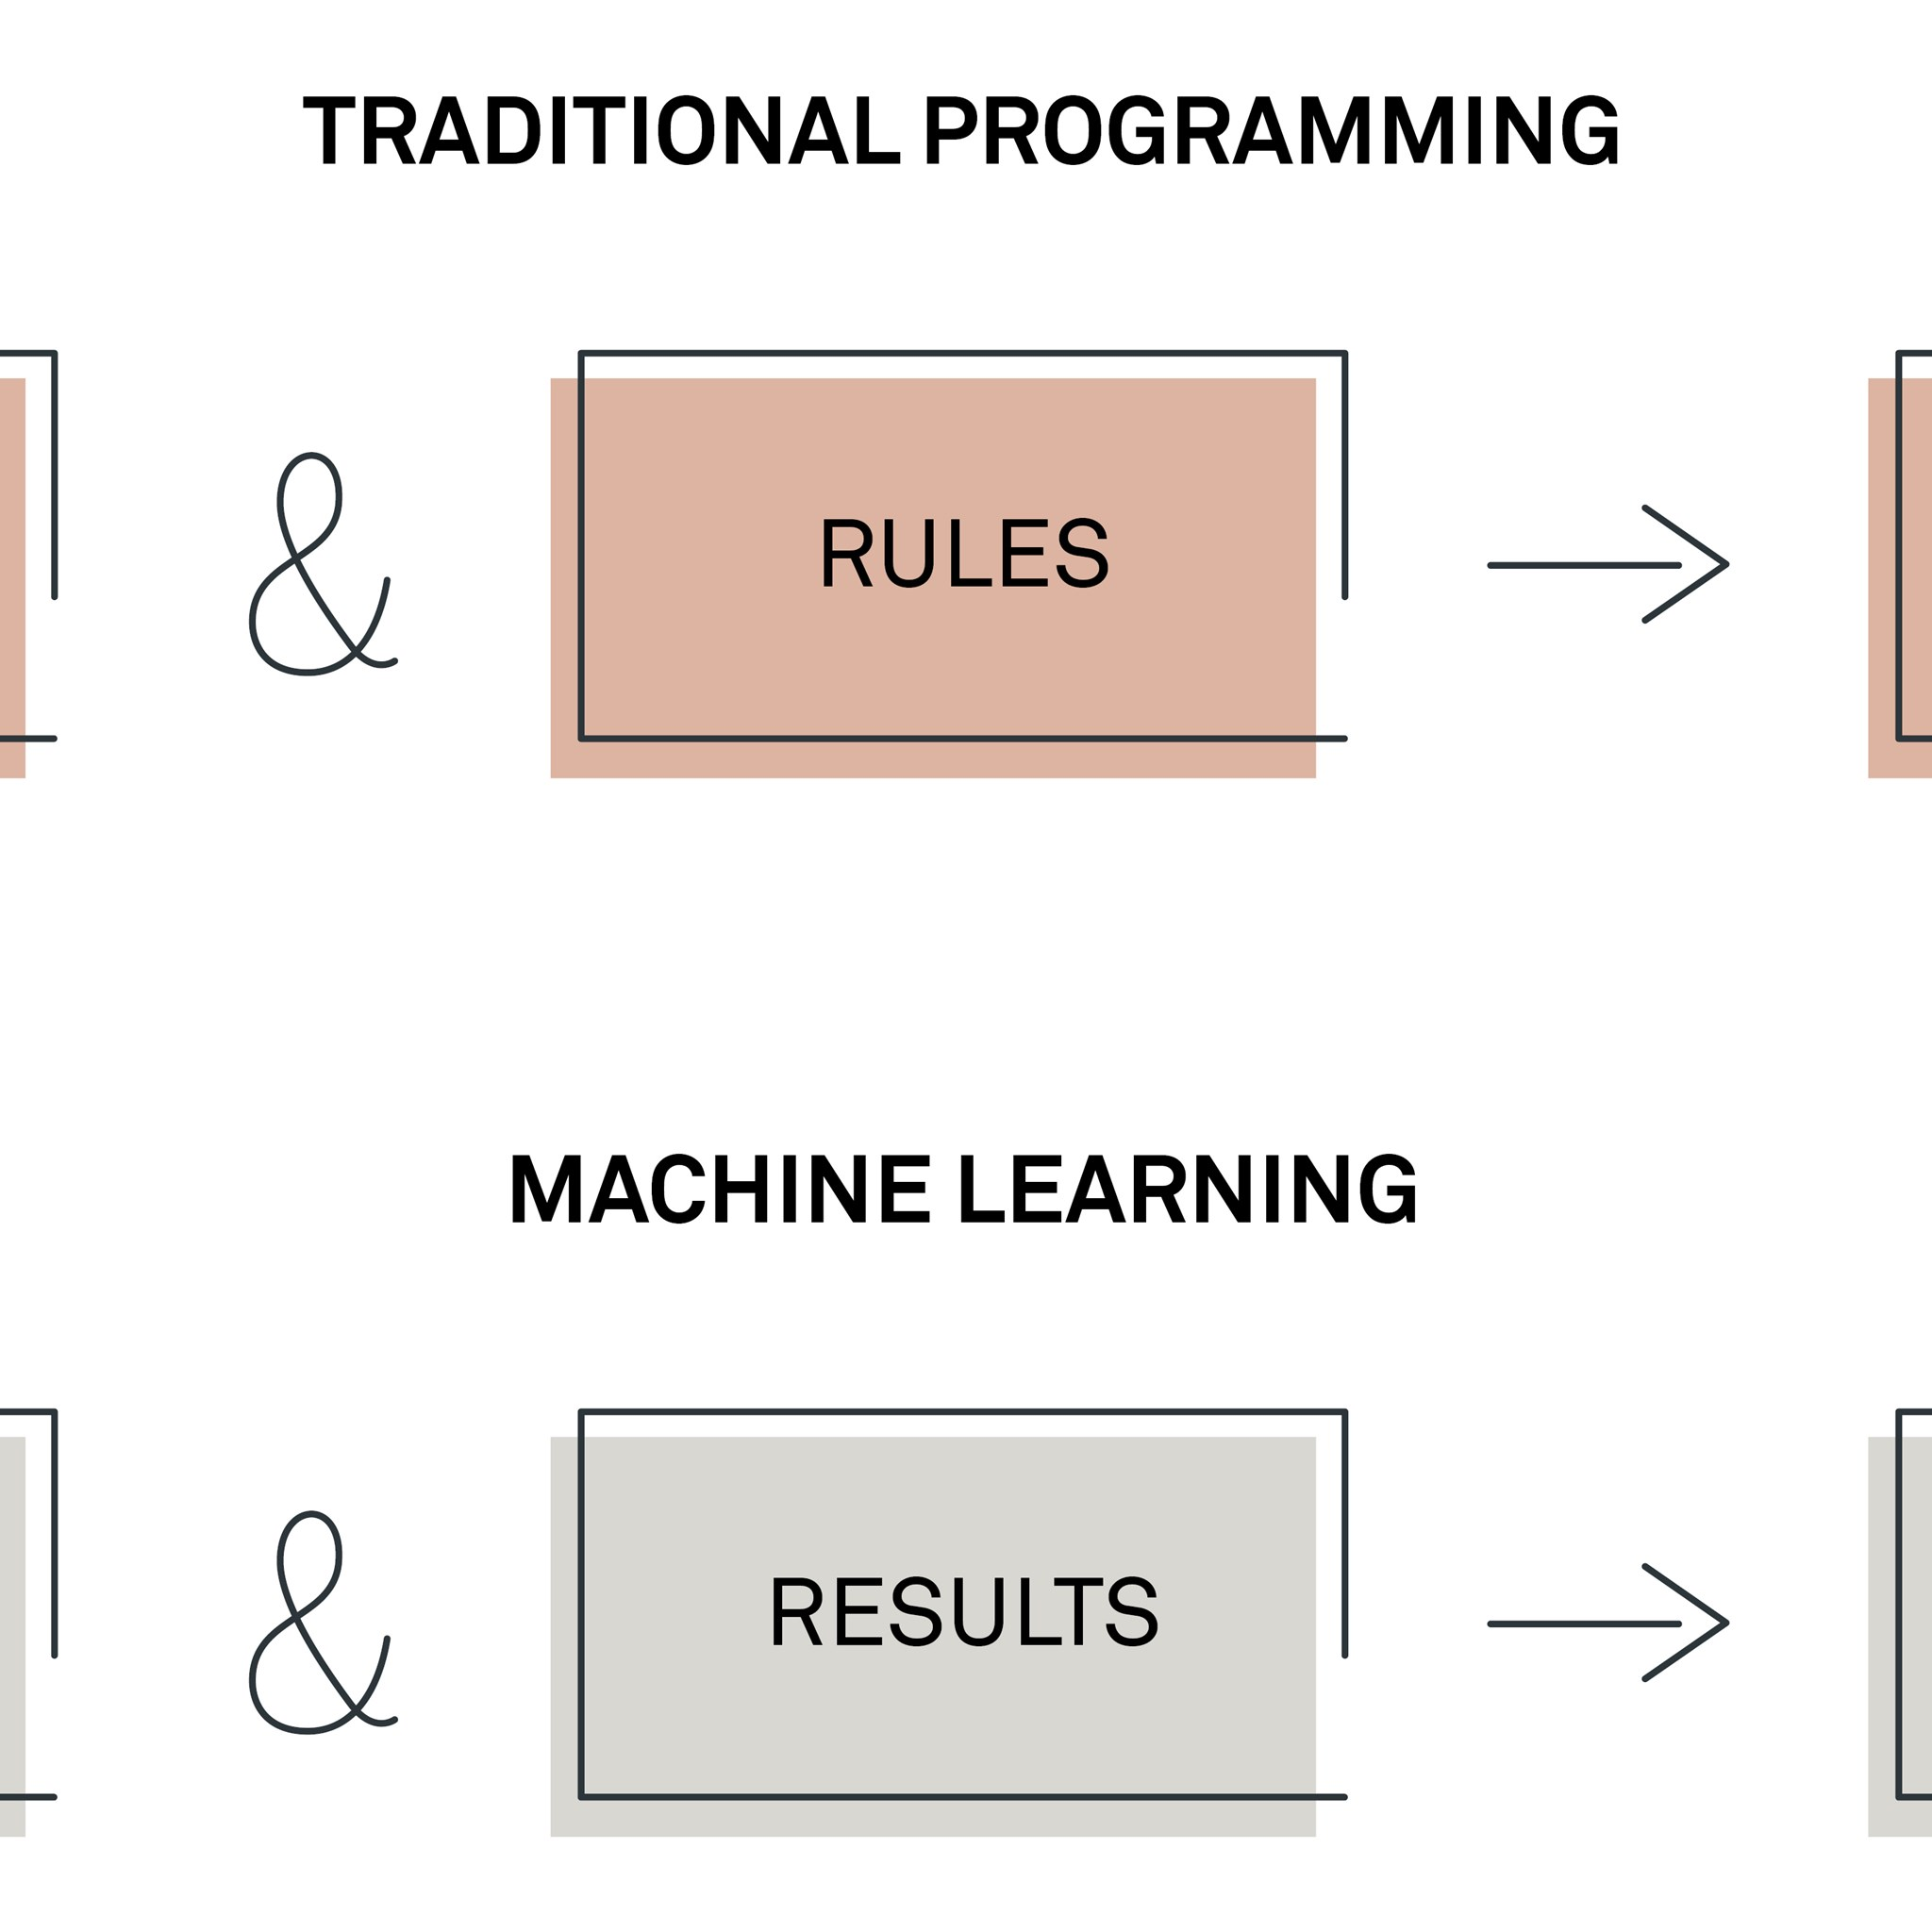 Traditional programming versus machine learning